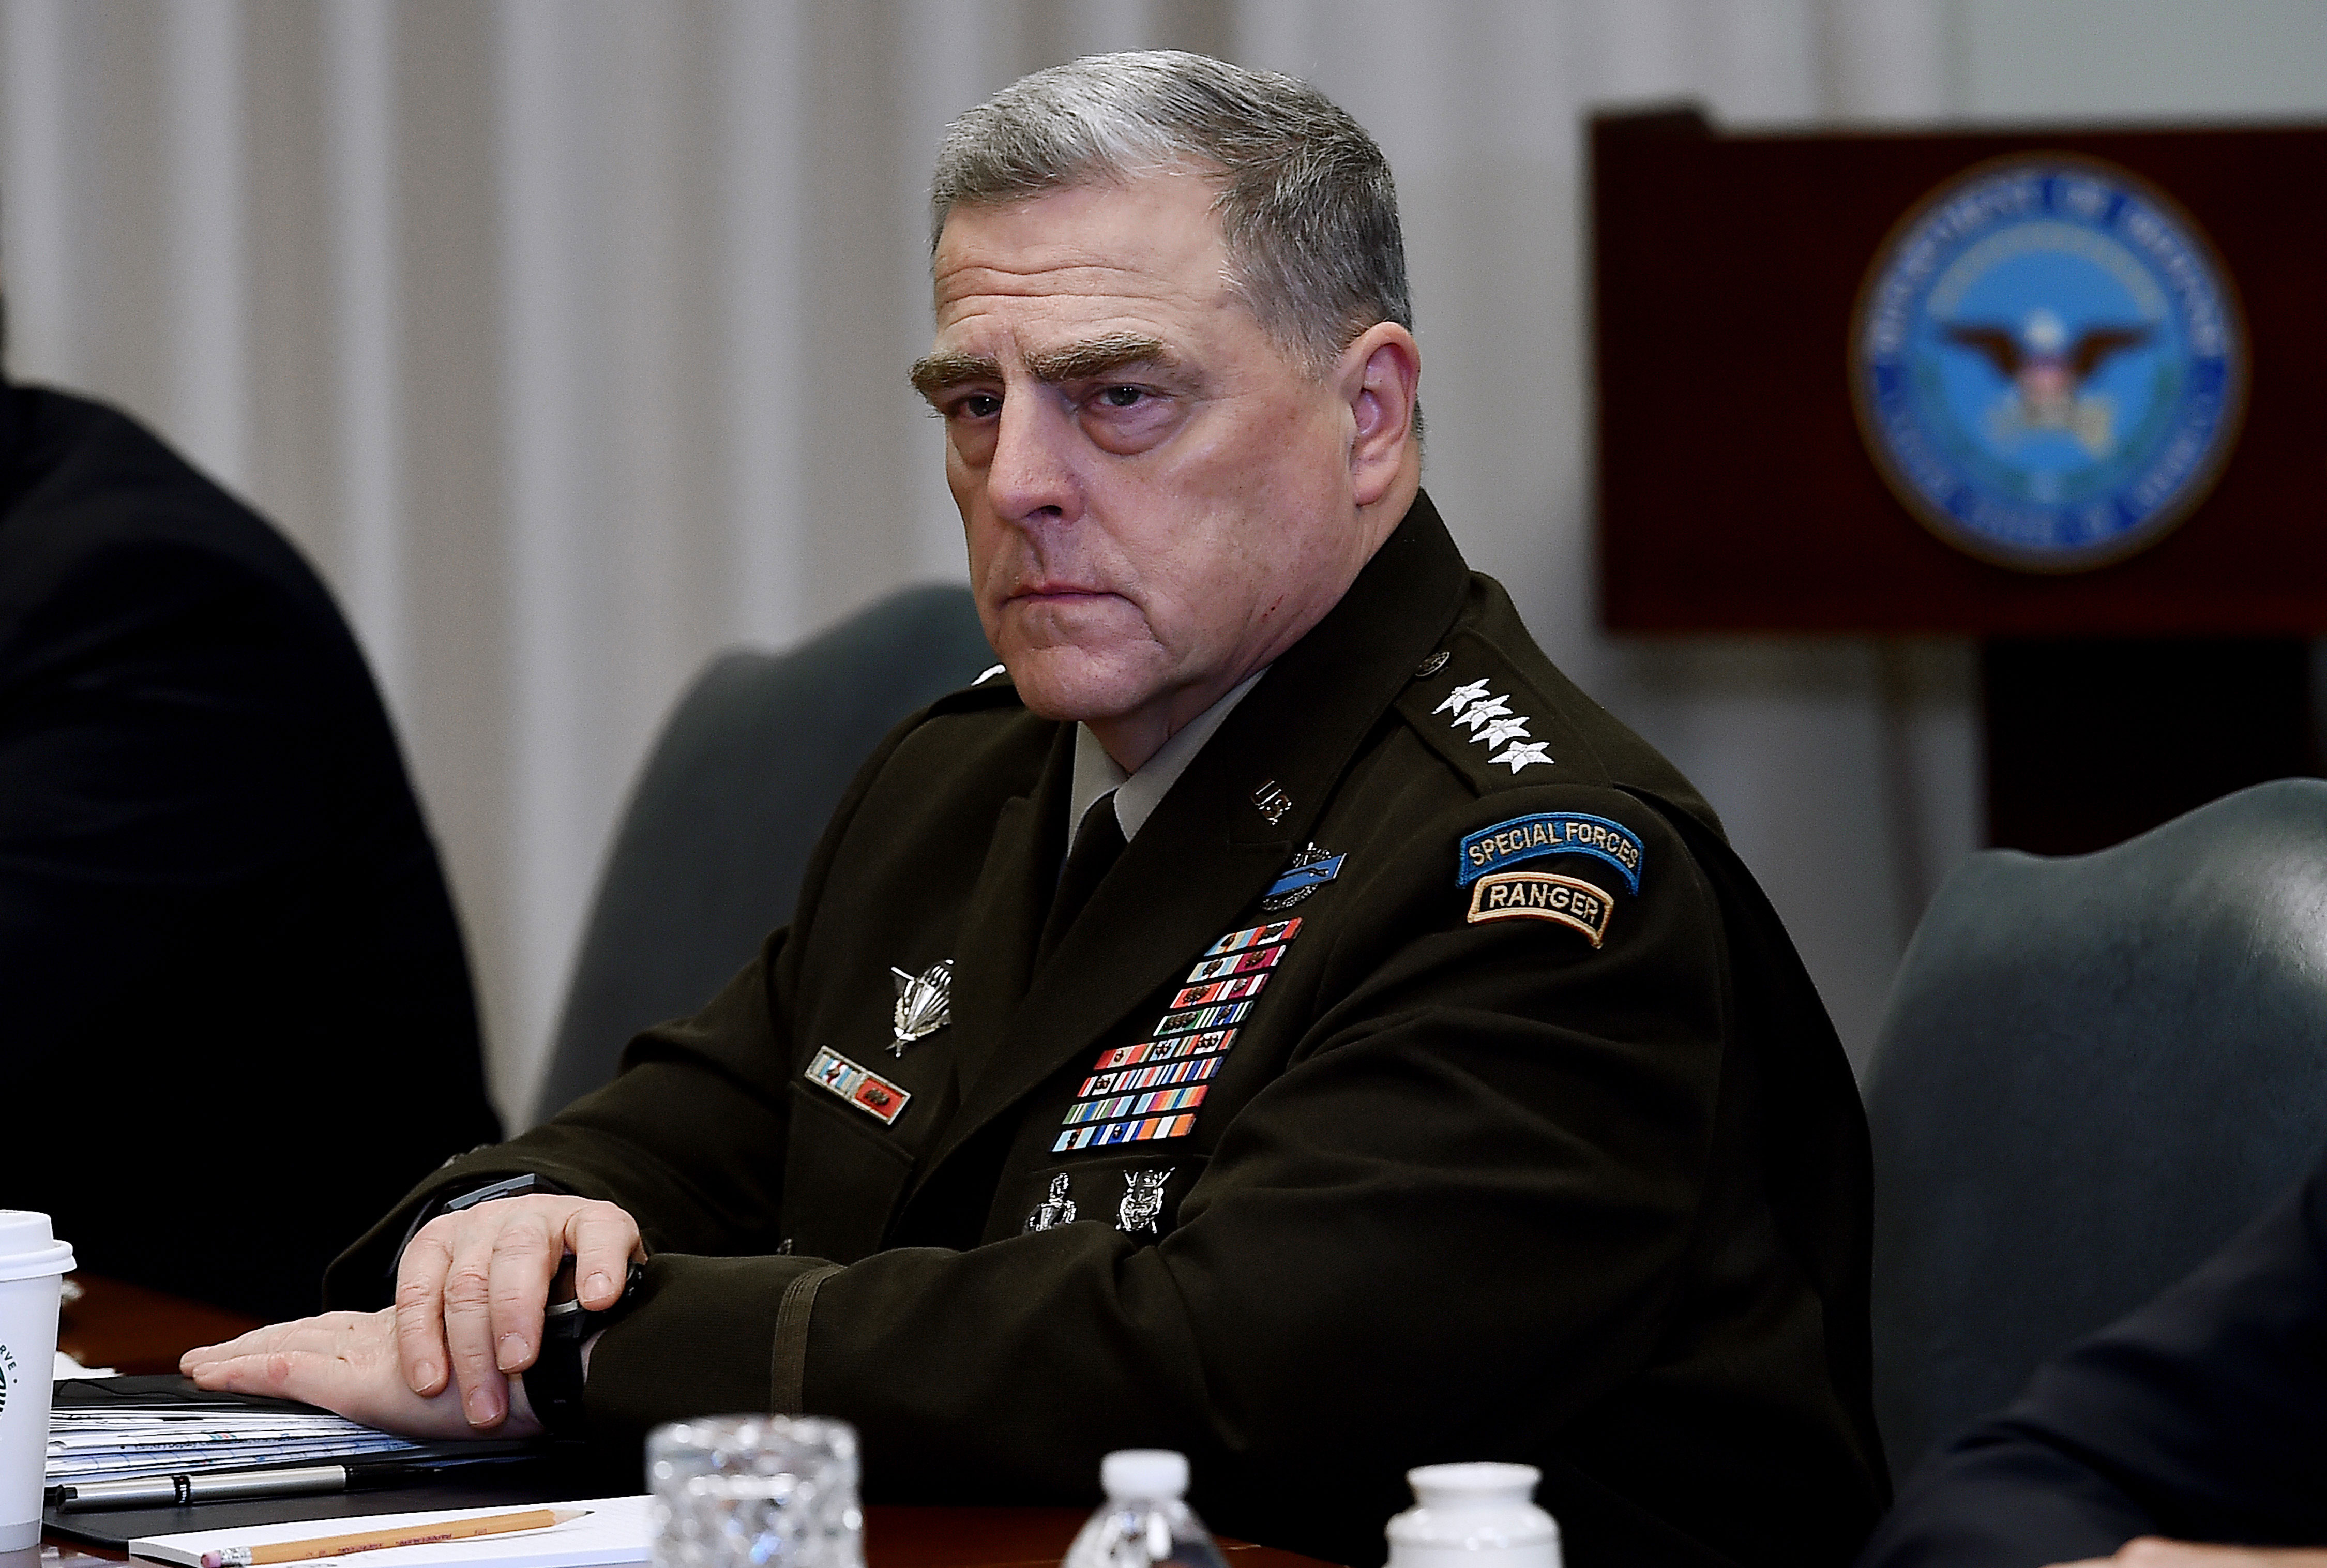 Top US general rejected Trump suggestions military should 'crack skulls' during protests last year, new book claims